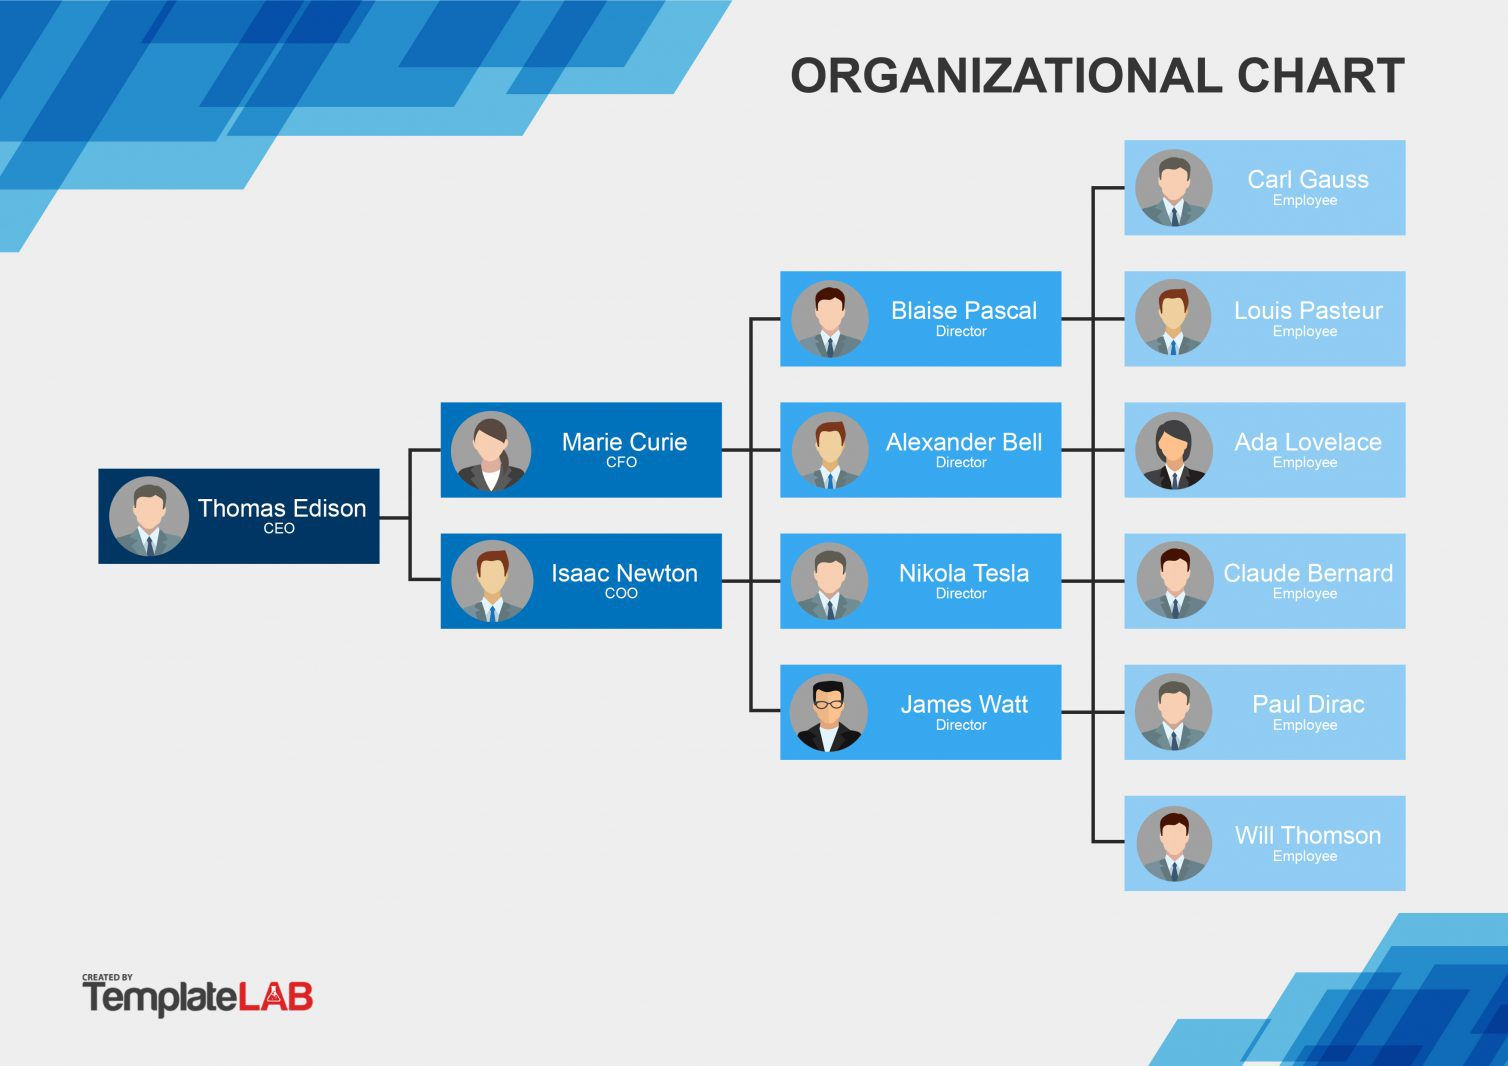 011 Remarkable Microsoft Organizational Chart Template Word Sample  Free 2013 HierarchyFull